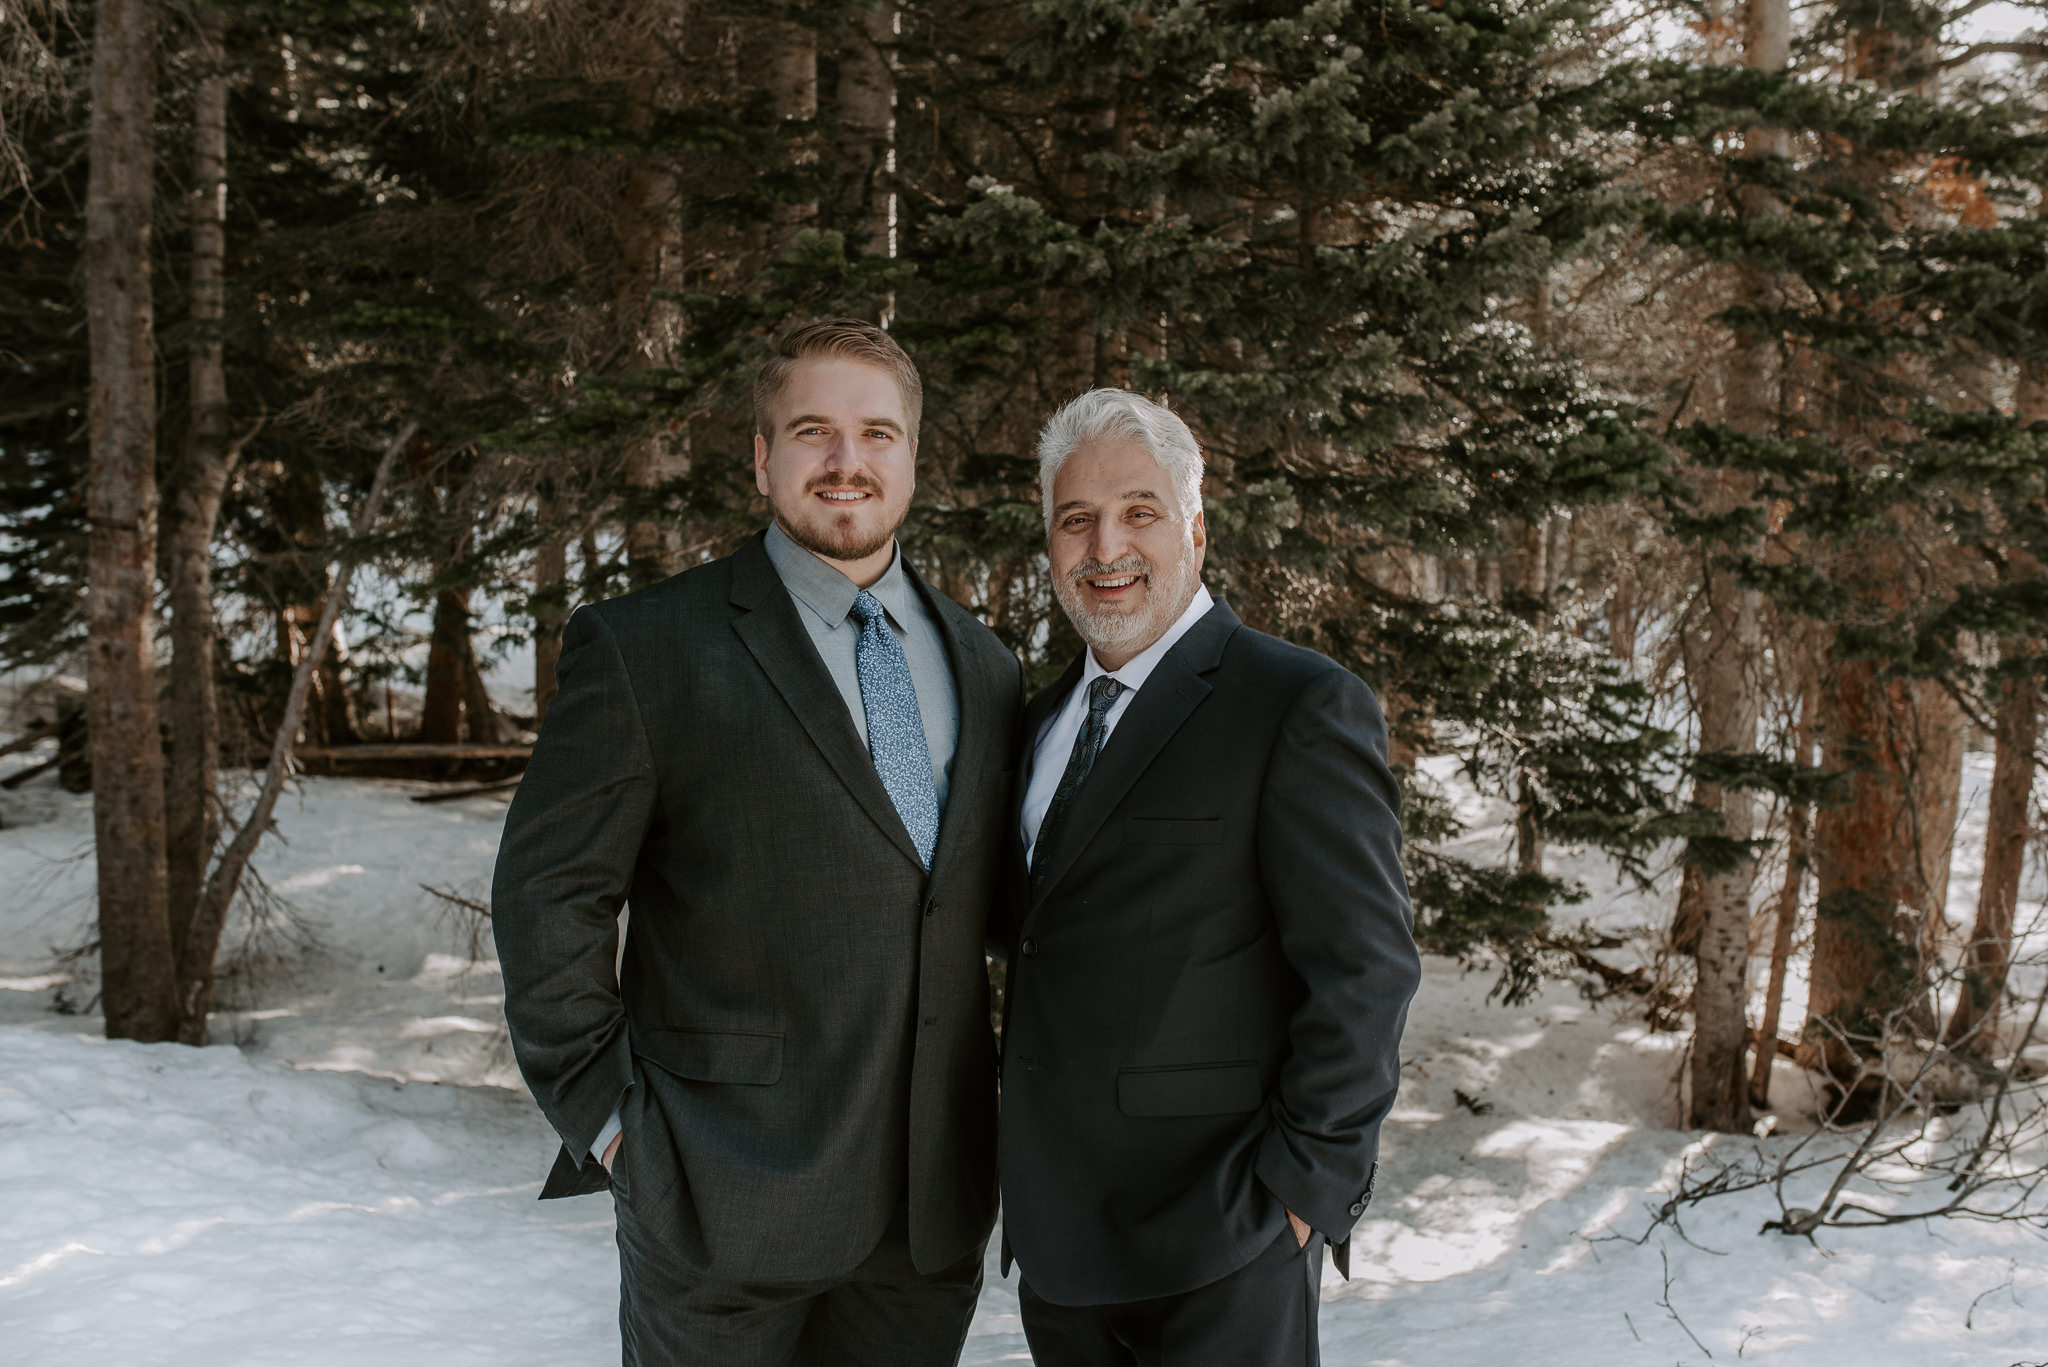 Adventure wedding at Bear Lake in Rocky Mountain National Park